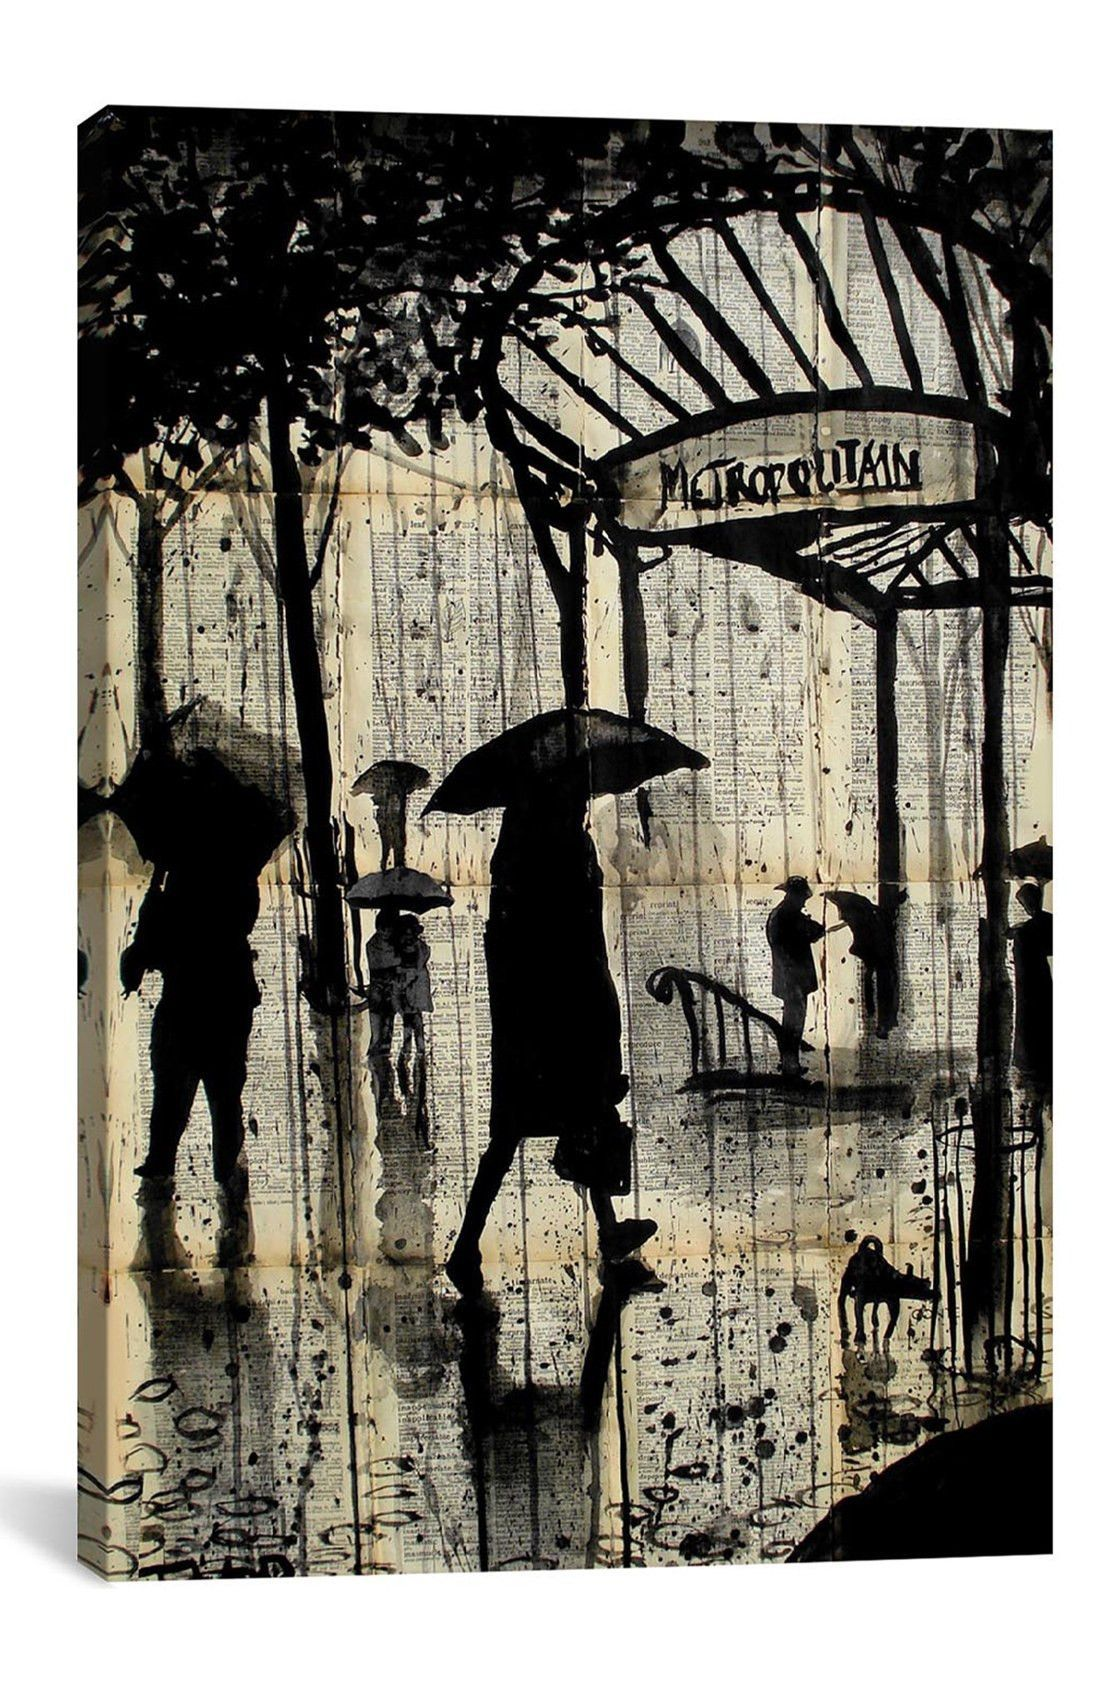 - Add brilliant color and exceptional detail to your living space with giclée canvas artwork that offers the texture, look and feel of fine-art paintings. Designed by artist Loui Jover, the piece is h